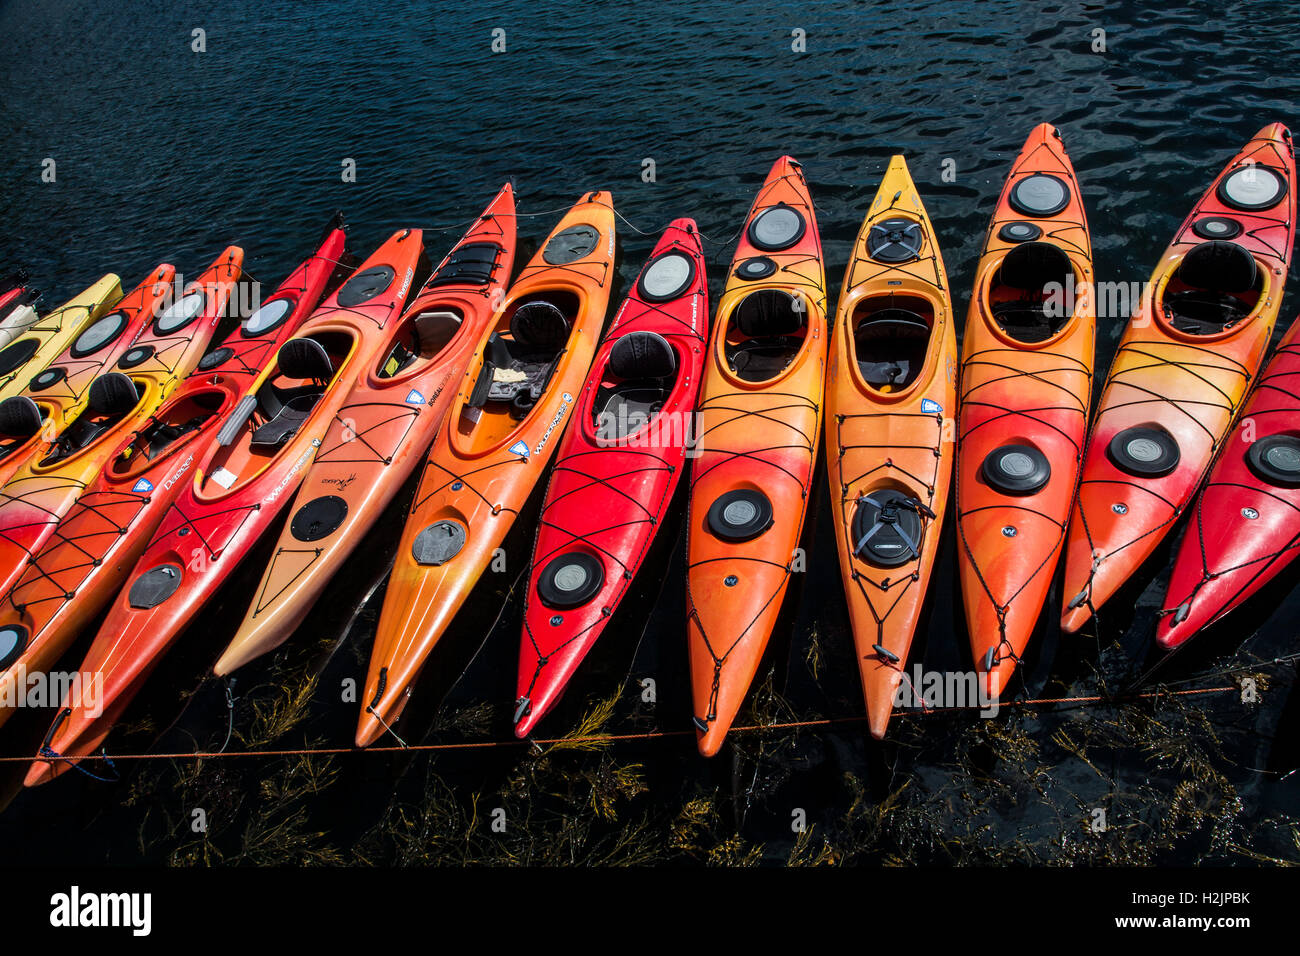 Close up colorato modello astratto di una fila di kayak, Rockport, Massachusetts, USA, New England, America, file Immagini Stock